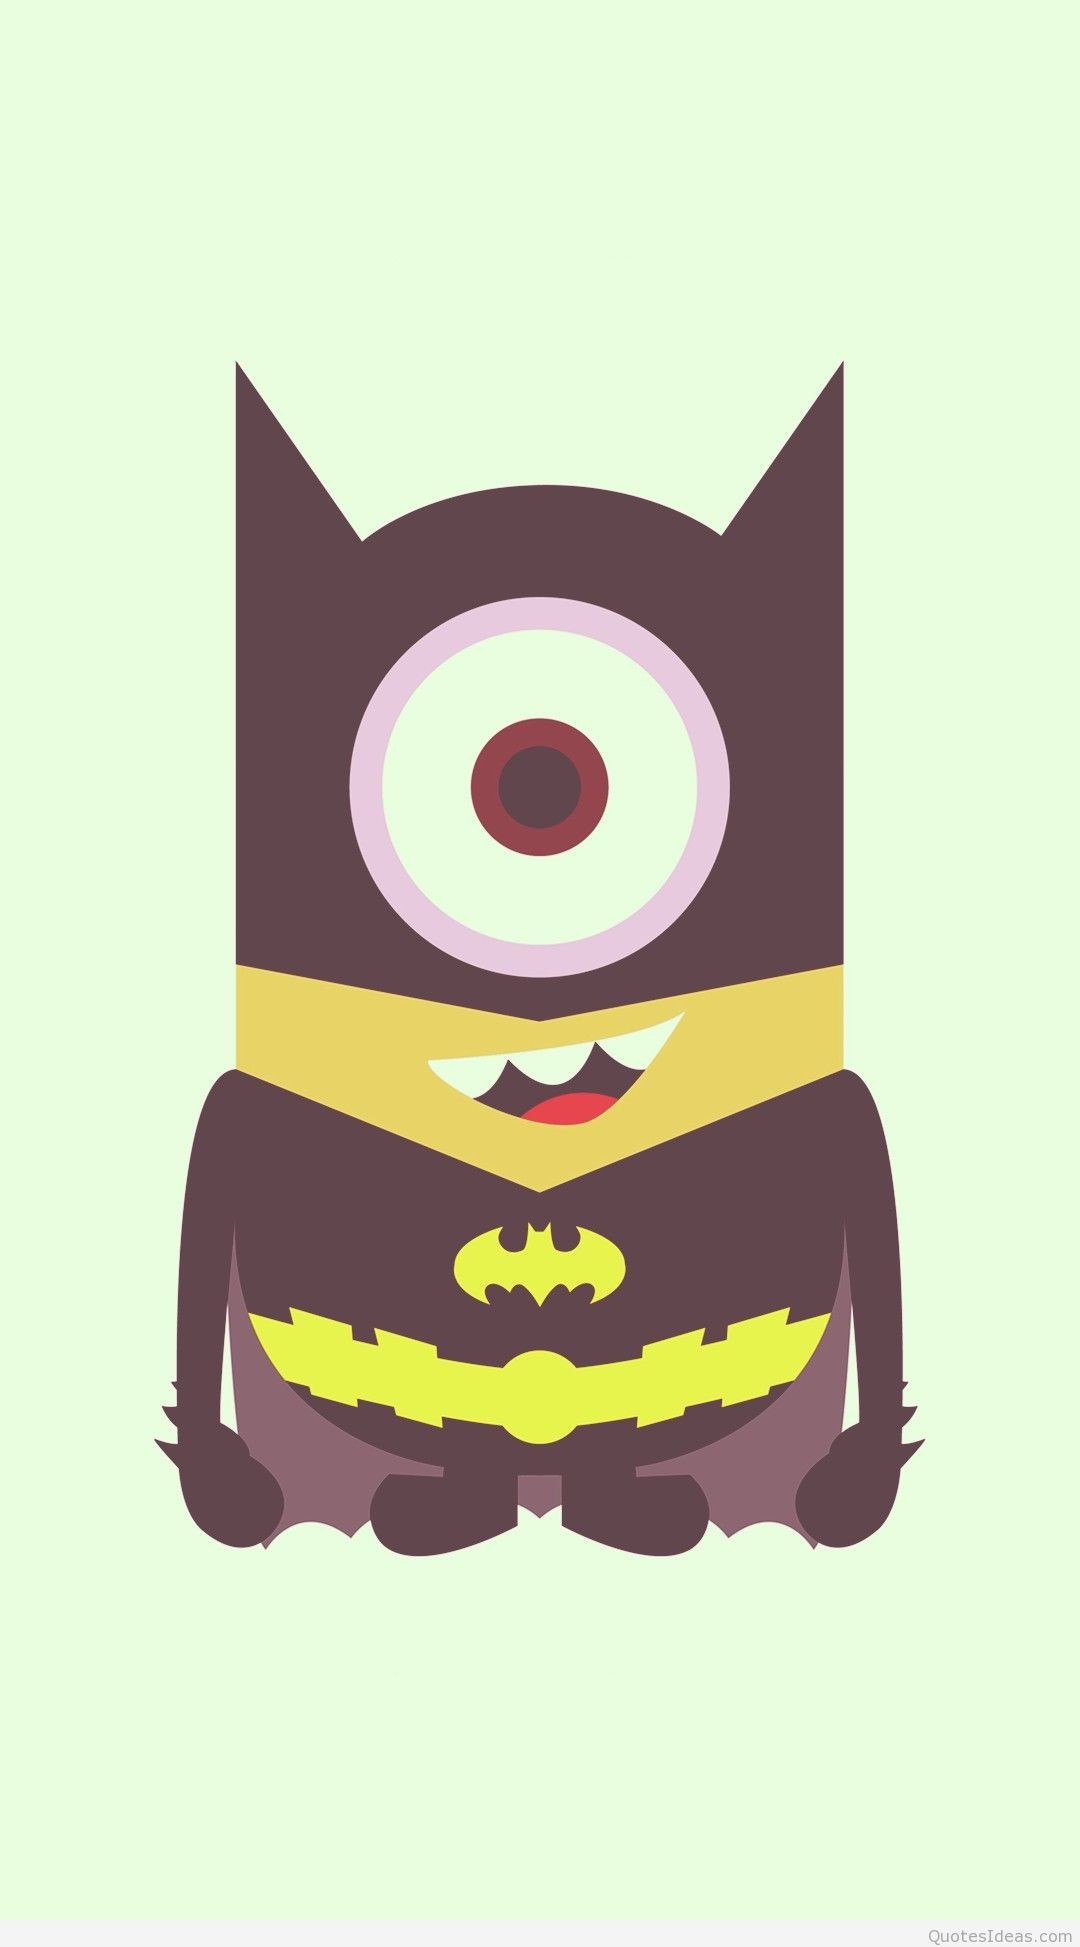 1080x1947 ... cool bat man minion iphone 6 plus wallpaper - despicable me 2014  halloween-f95571 ...